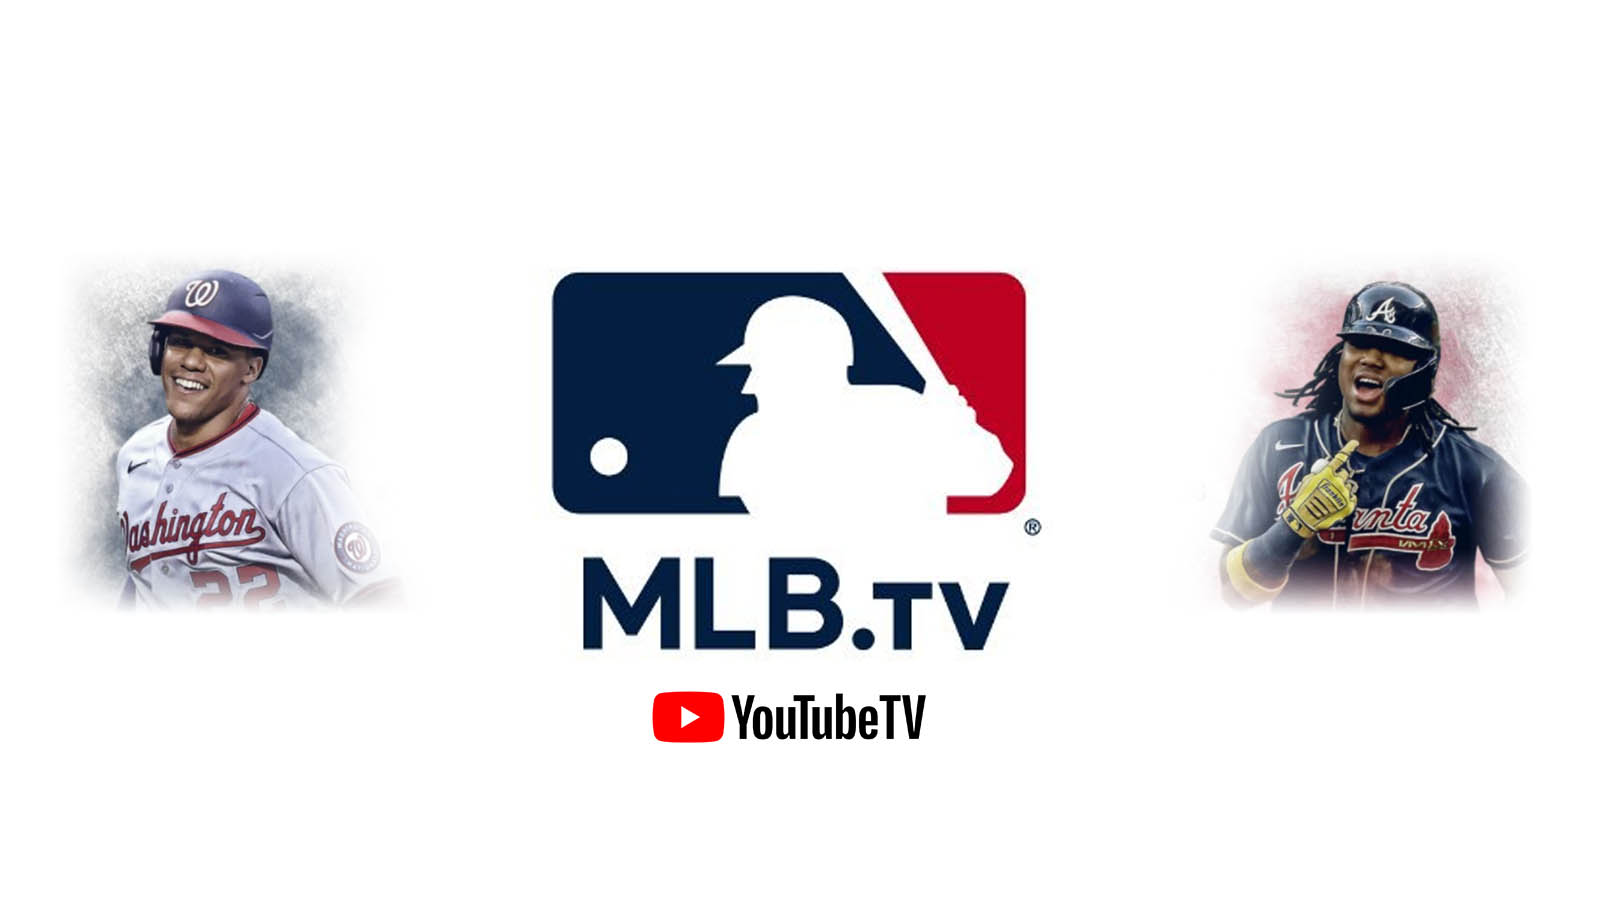 Youtube TV hits another home run by adding support for MLB.TV